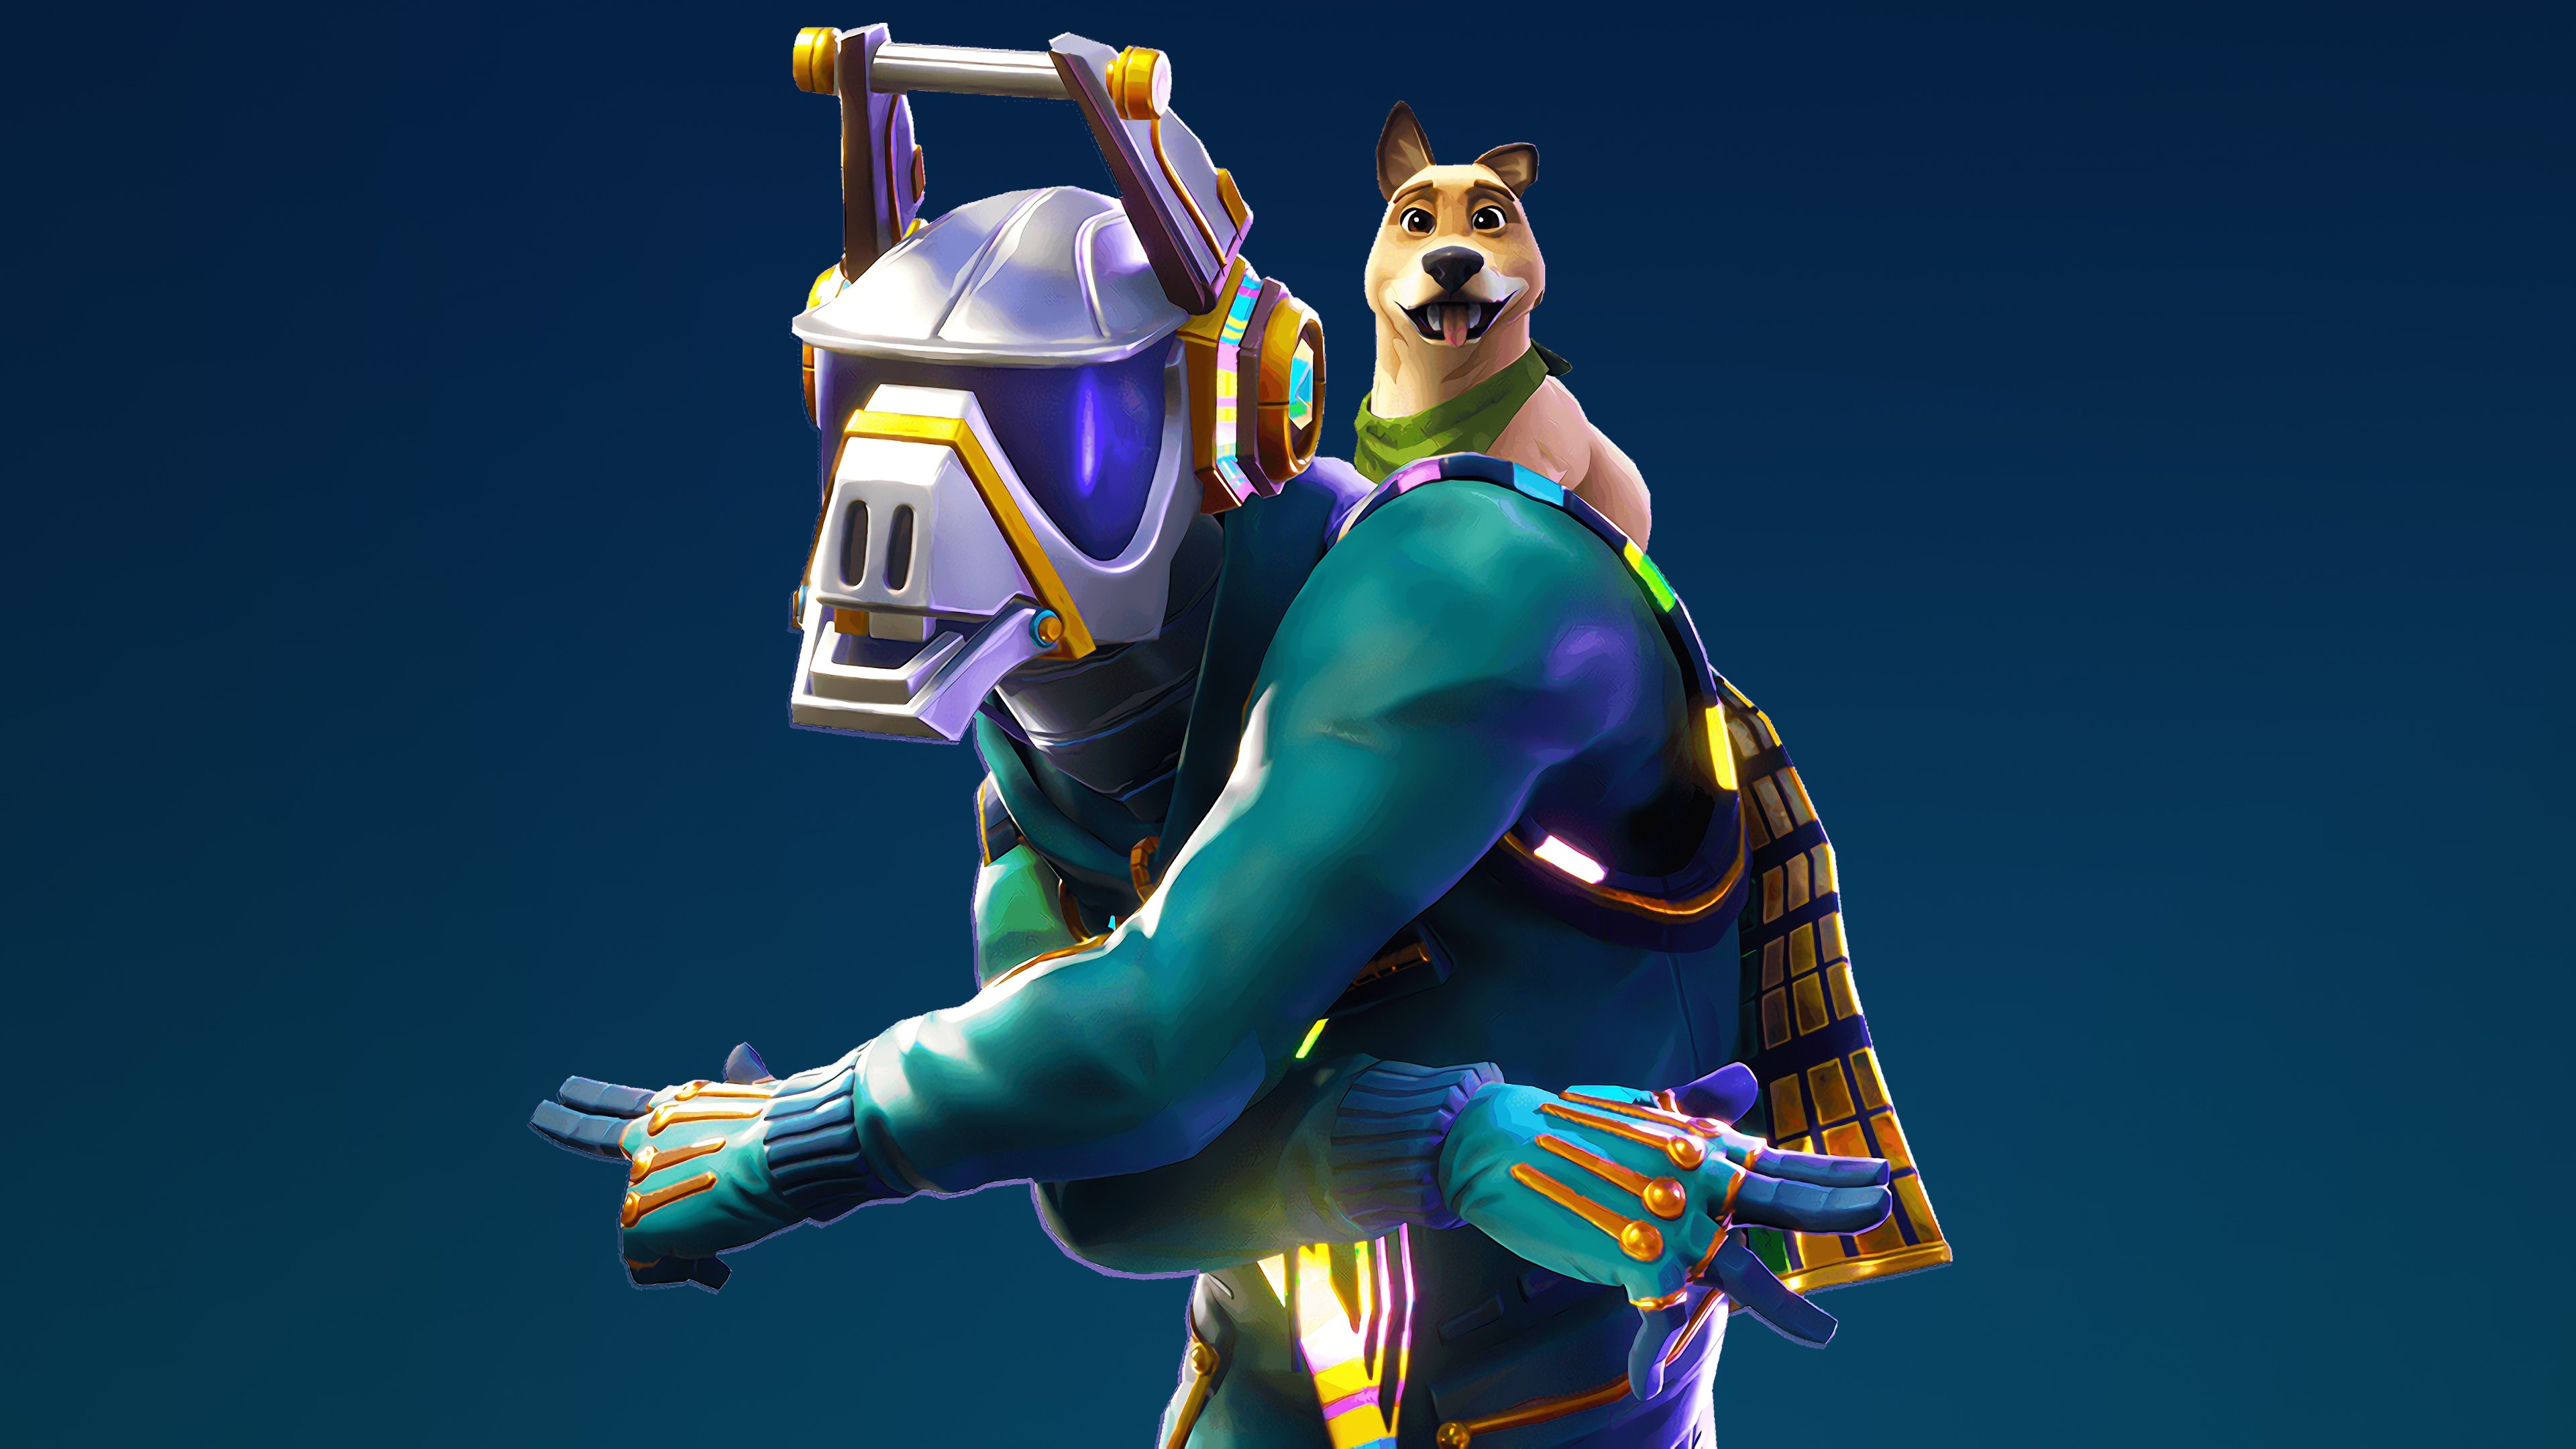 Dj Yonder 4K Wallpaper Fortnite Season 6 4284 Wallpapers and 3840x2160